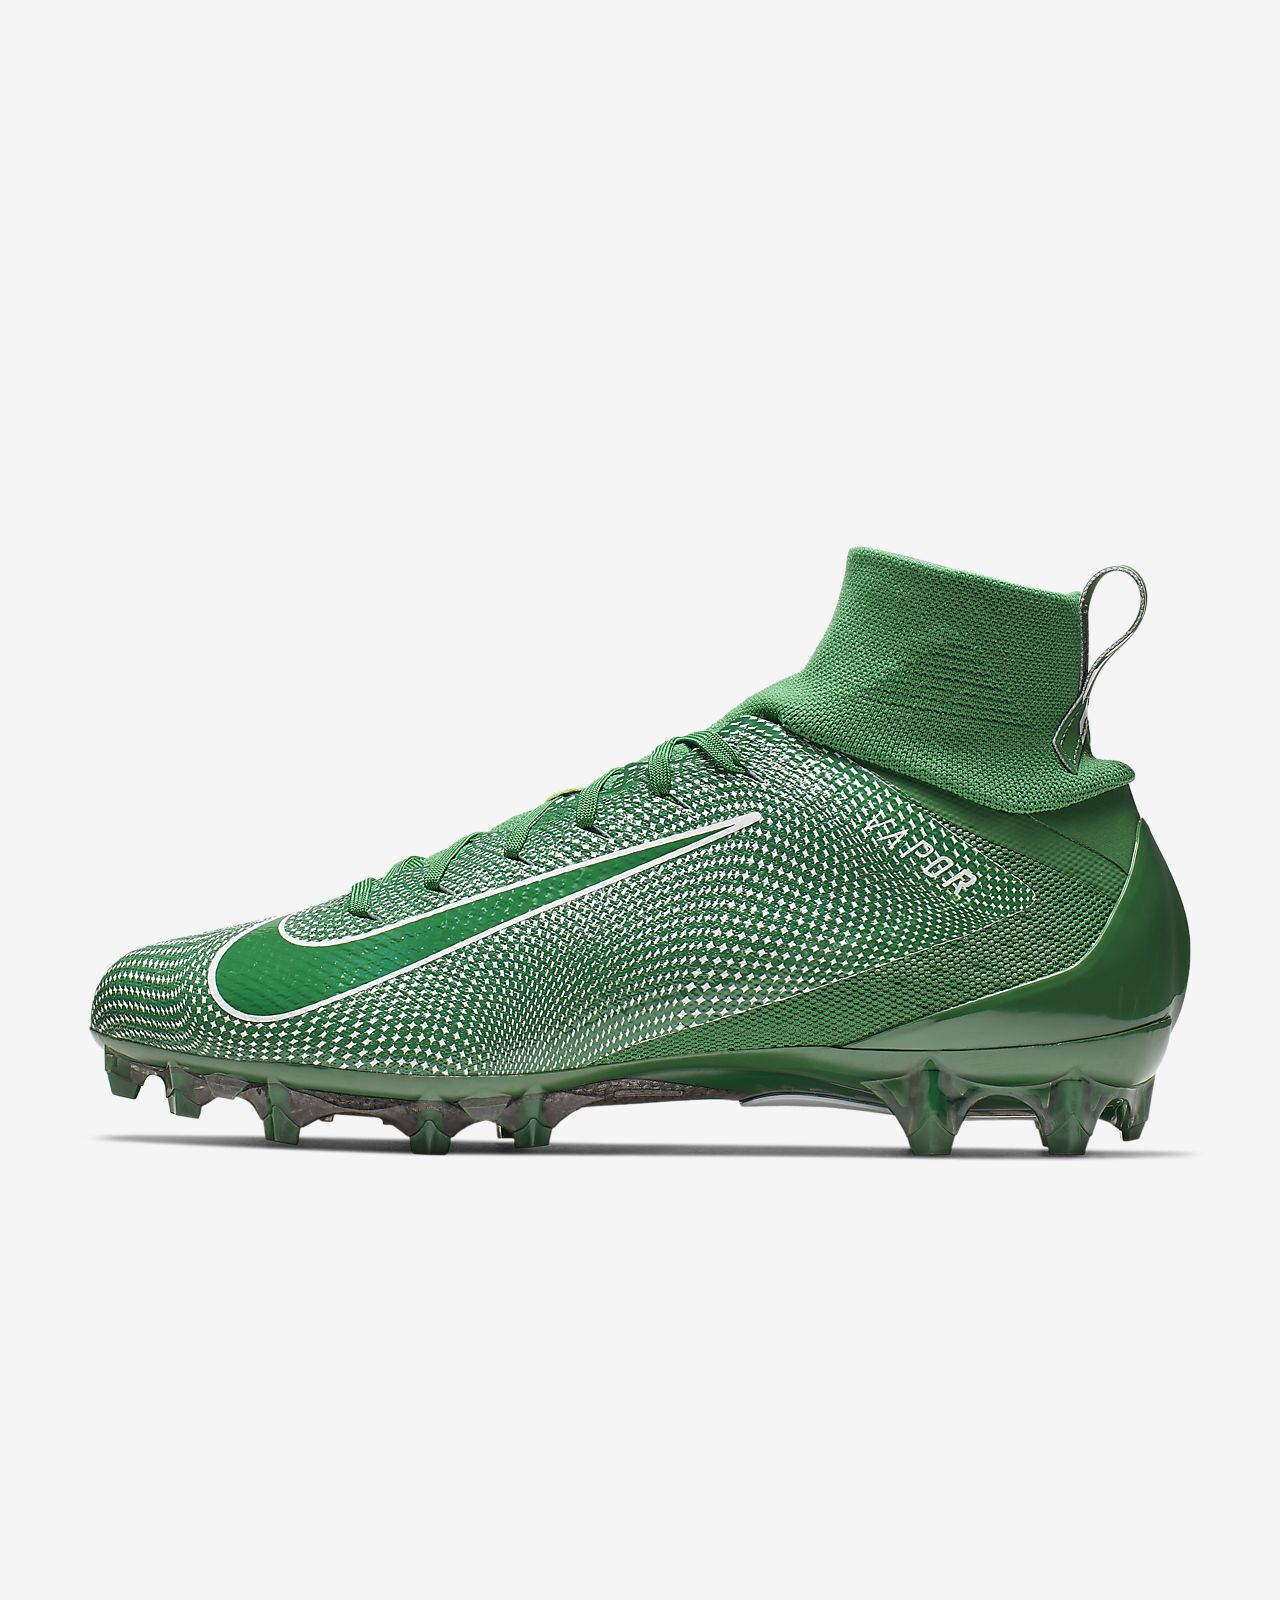 Nike Vapor Untouchable 3 Pro Football Cleat